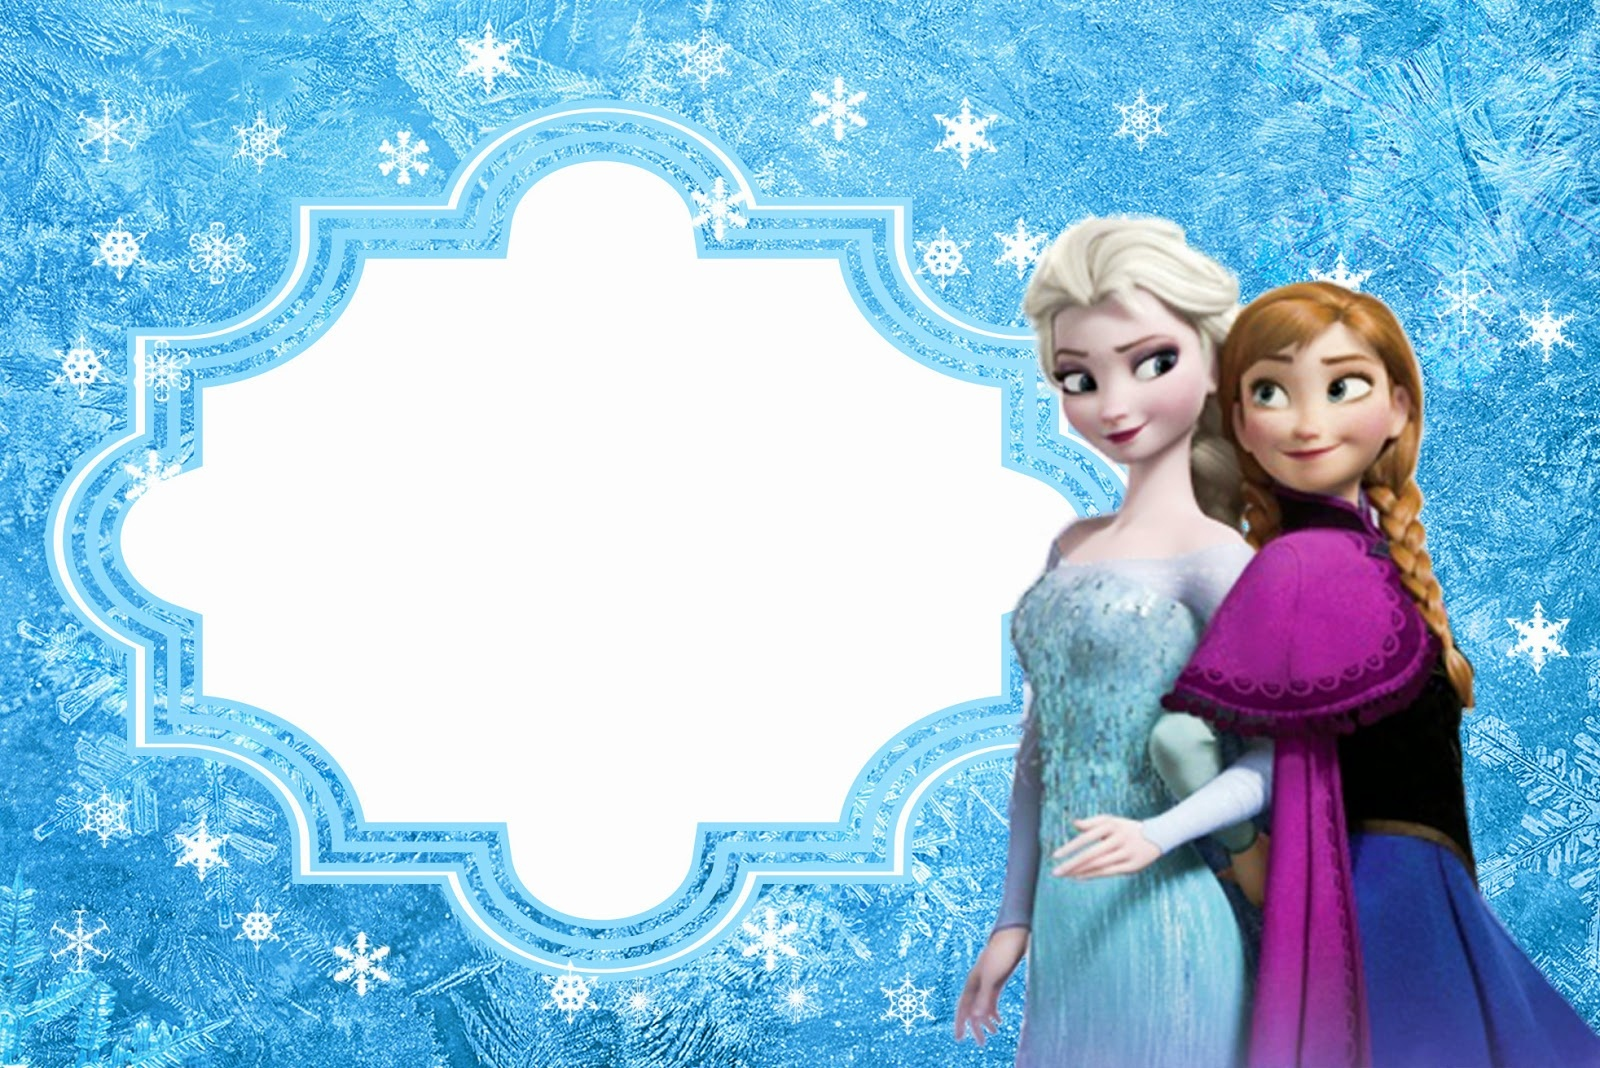 Frozen: Free Printable Cards Or Party Invitations. - Oh My Fiesta - Free Printable Frozen Birthday Invitations